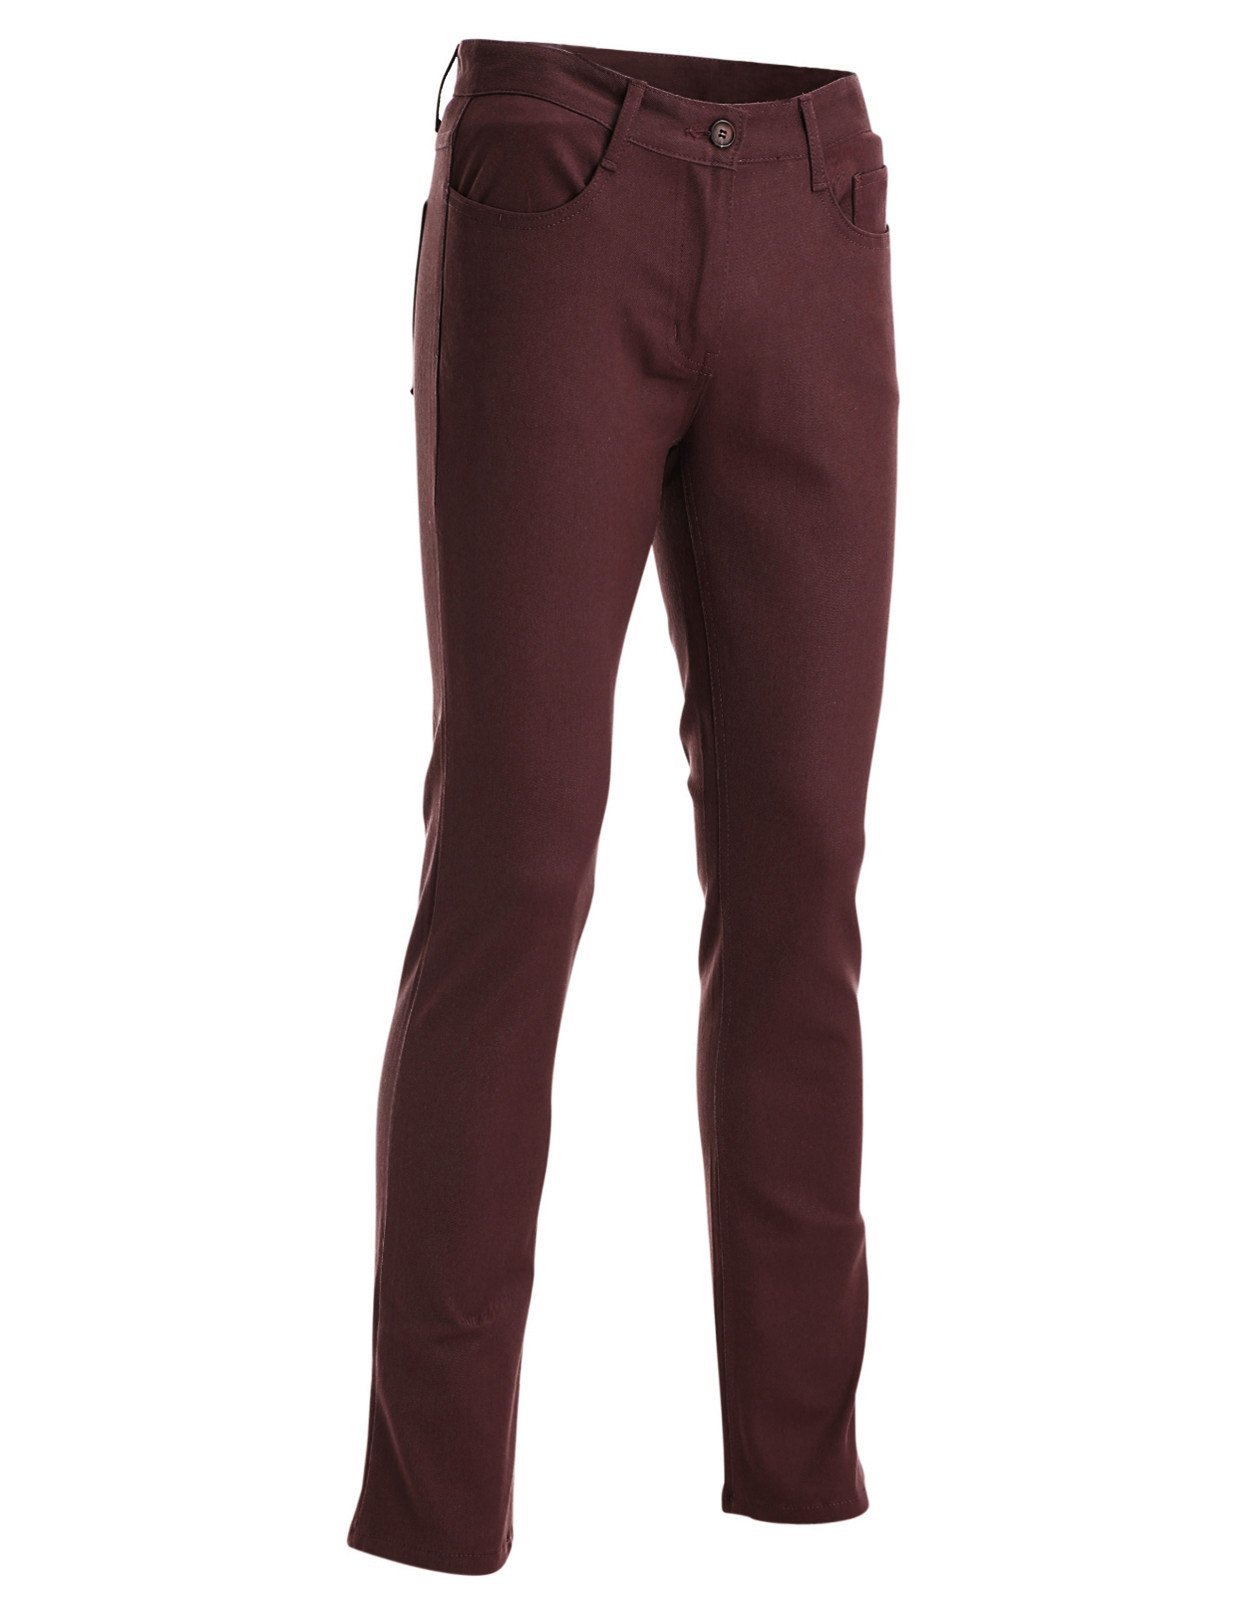 FLATSEVEN Mens Slim Fit Flat Front 5 Pocket Casual Twill Chino Pants Trousers (CH2000) Wine, 2XL